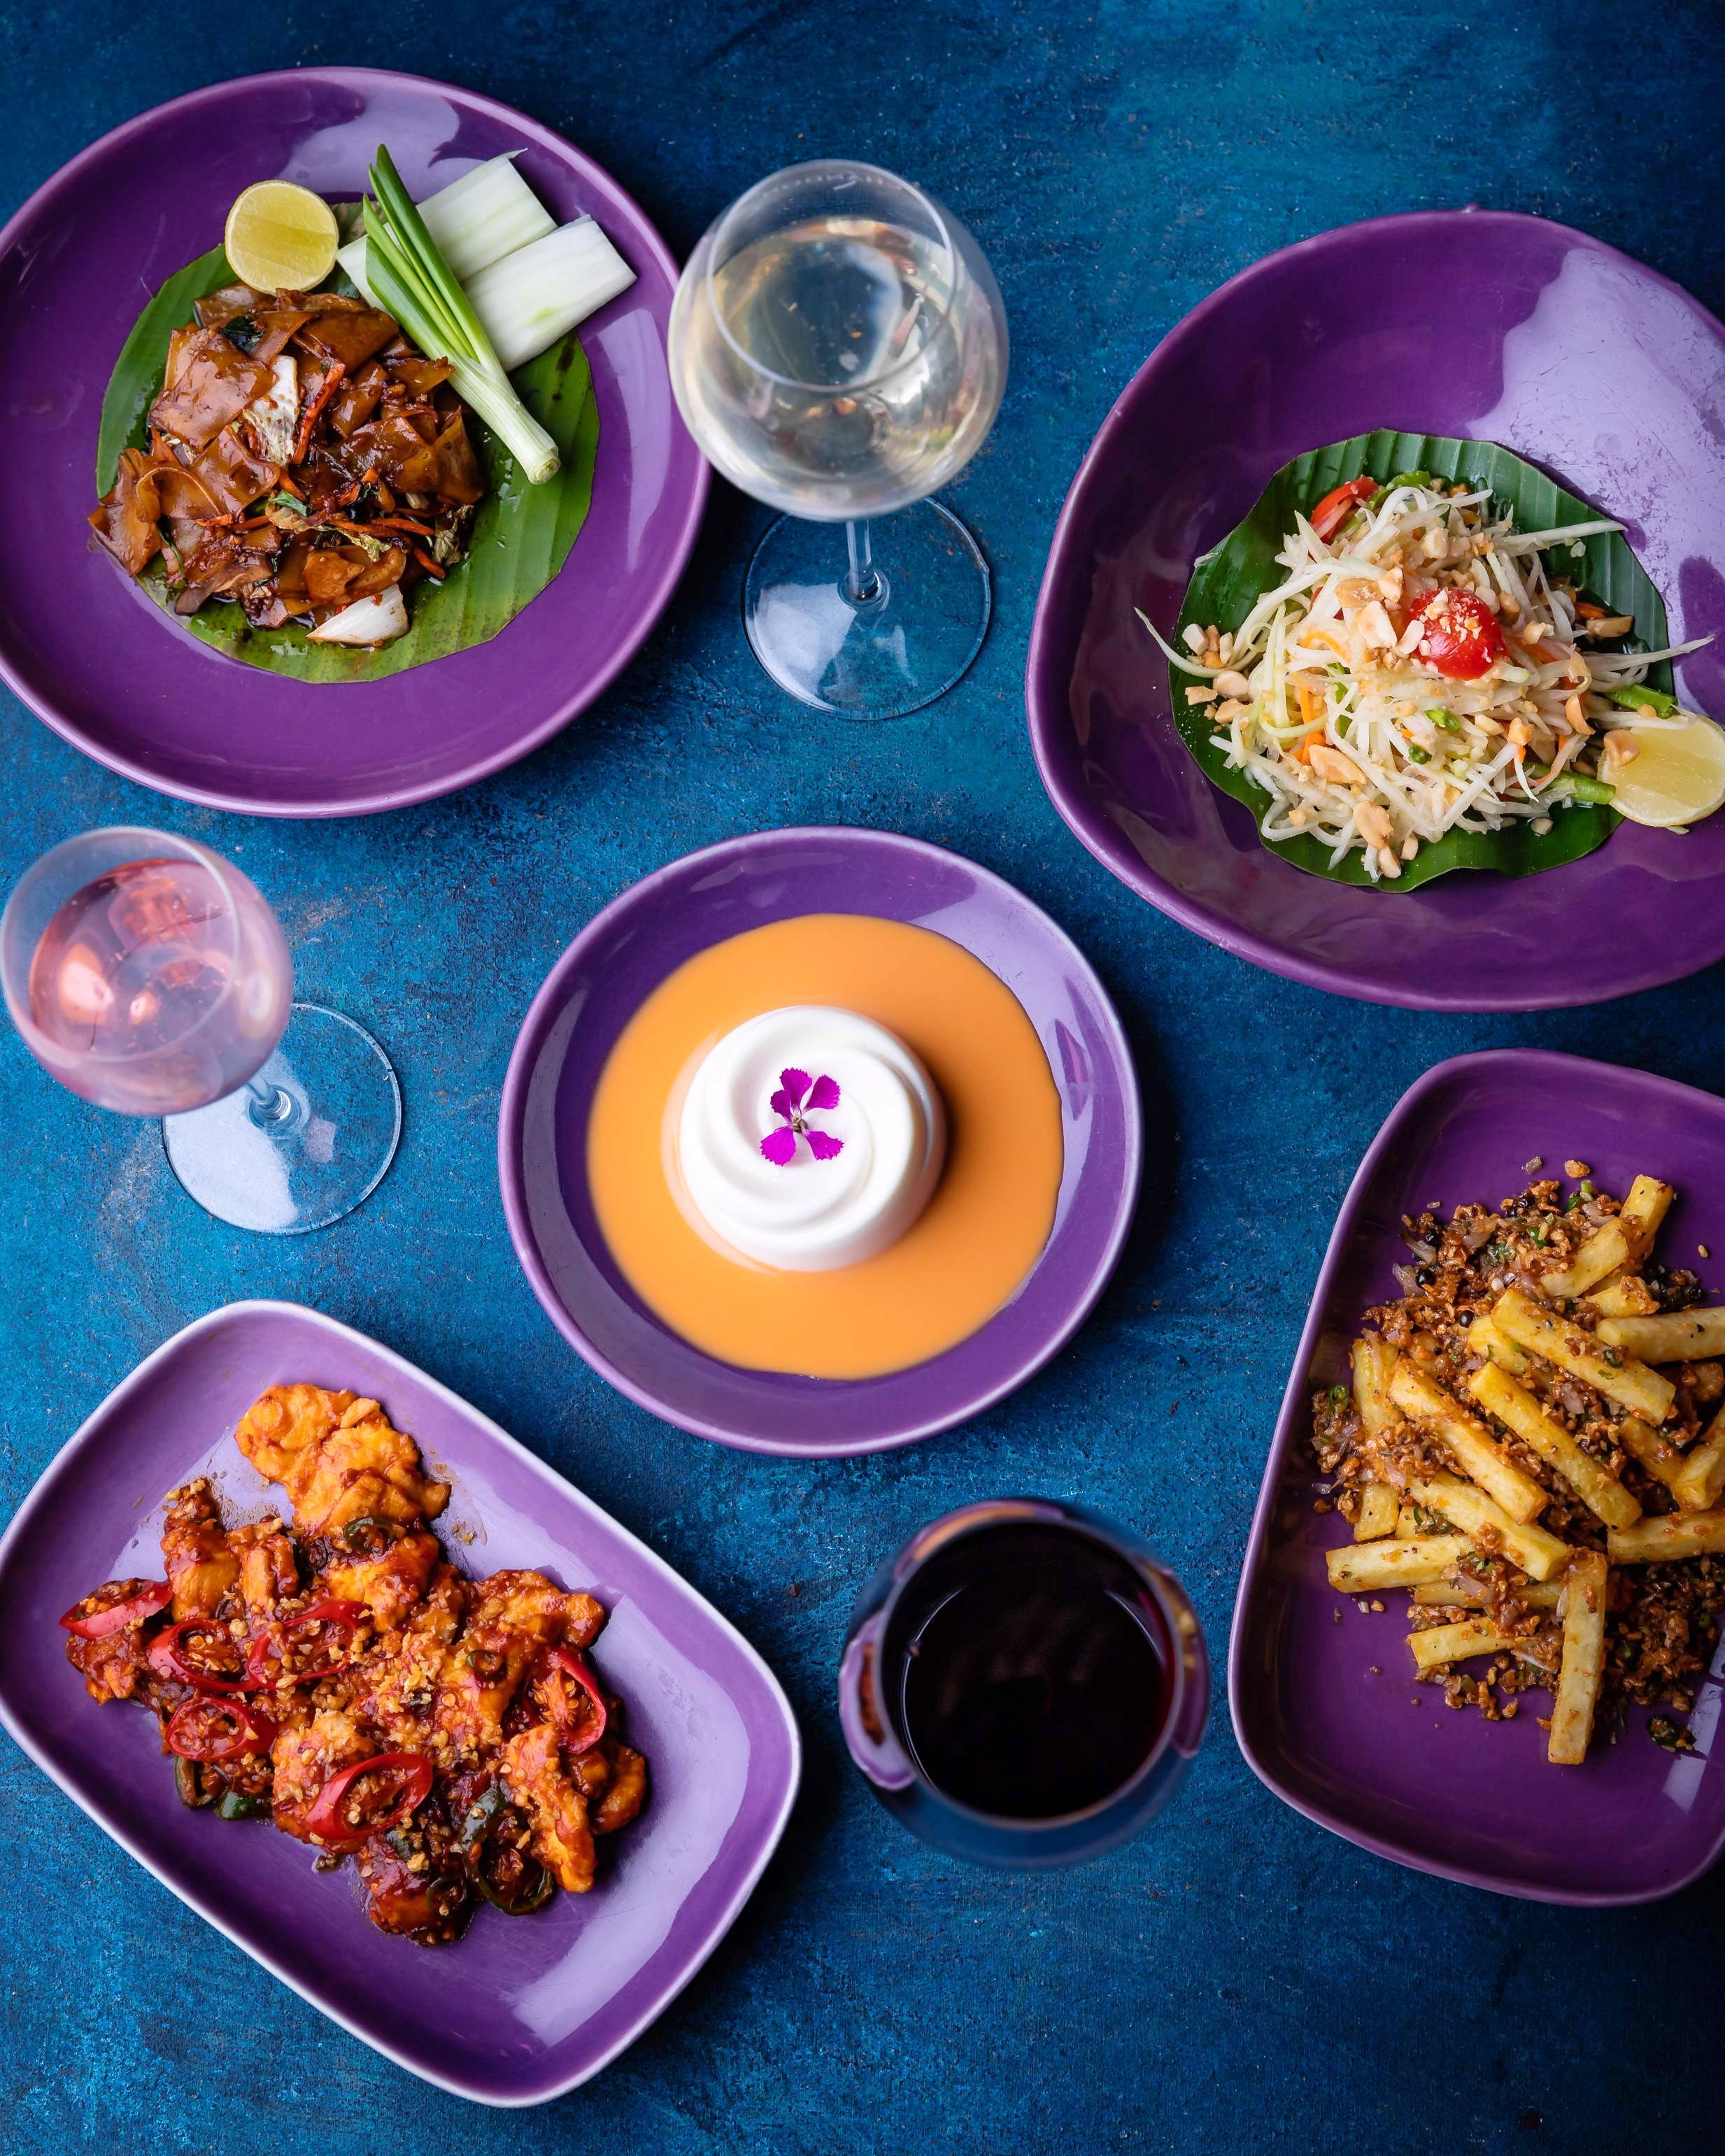 A Four-Course Menu Paired With Wine For An Ultimate Thai Dining Experience